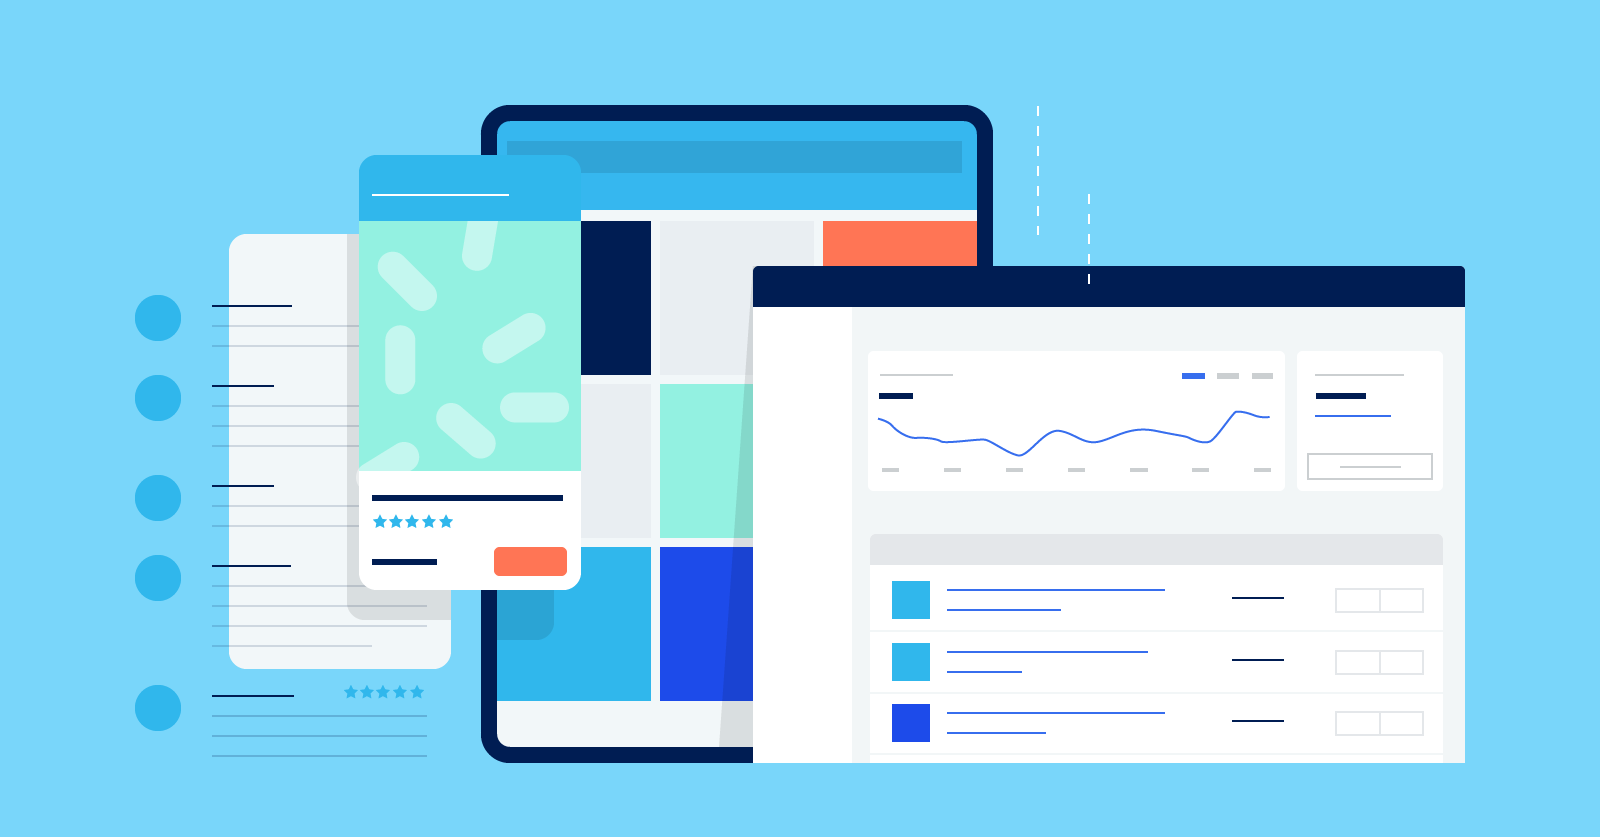 Wish User and Revenue Stats